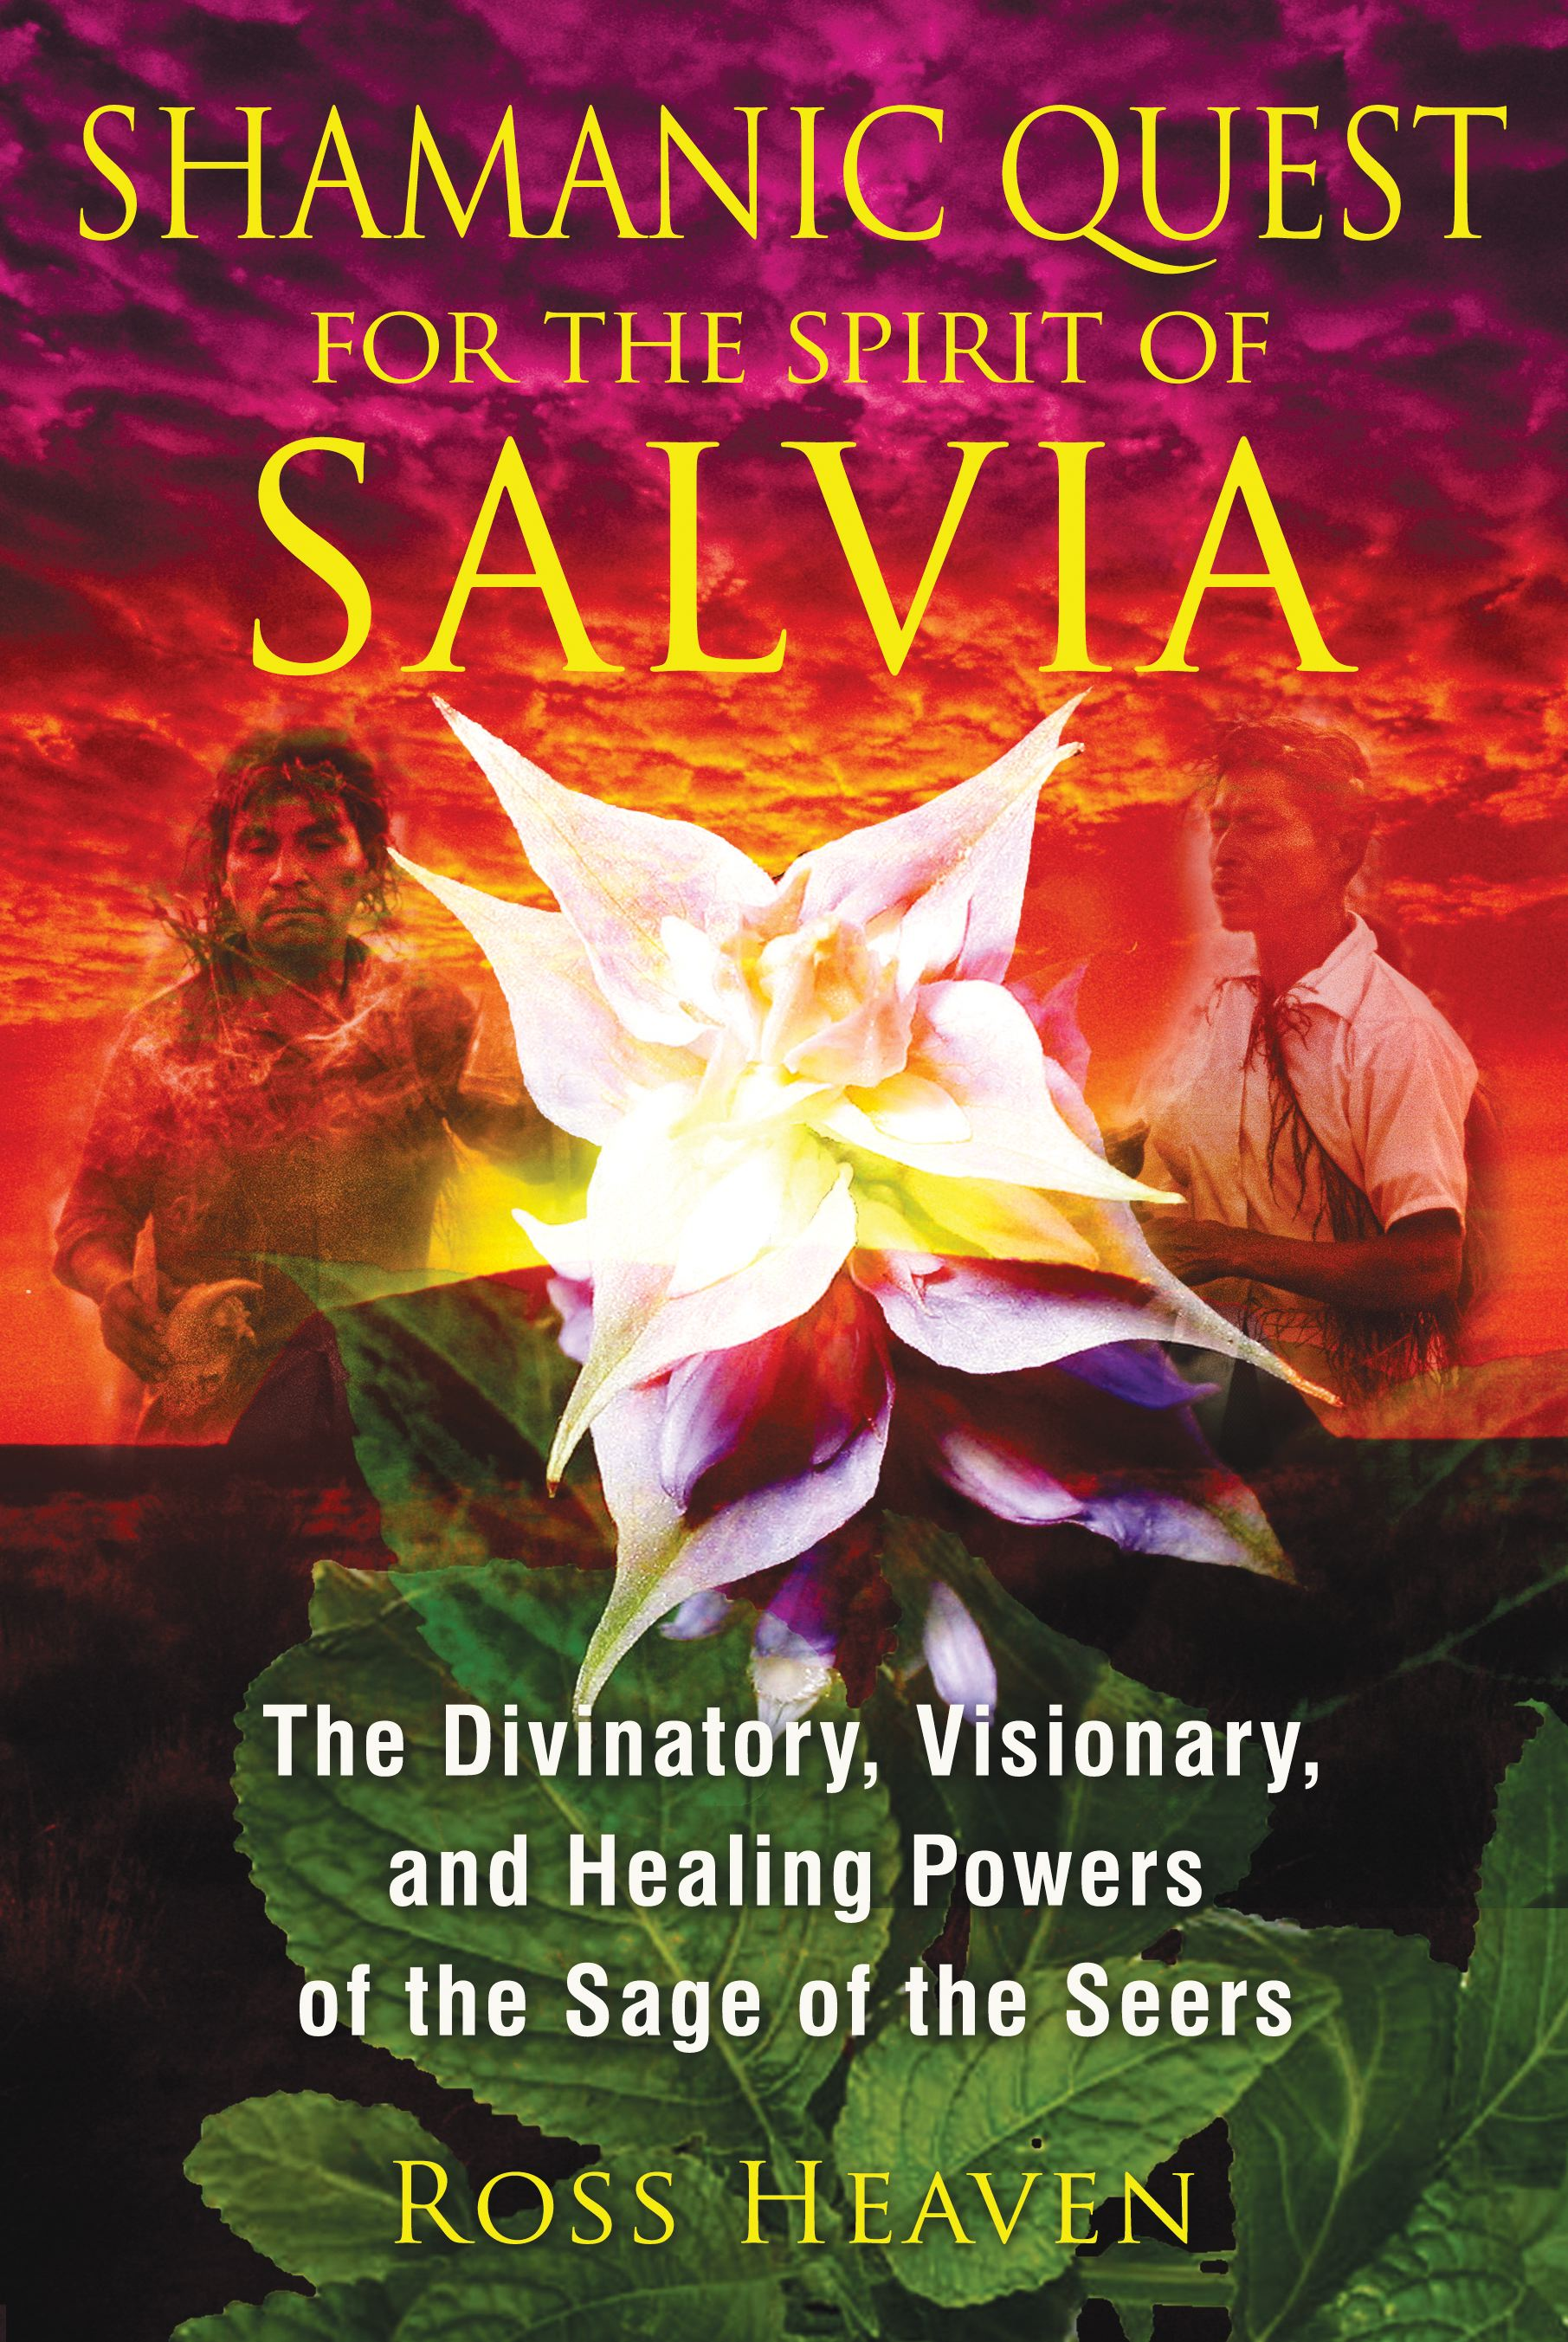 Shamanic quest for the spirit of salvia 9781620550007 hr